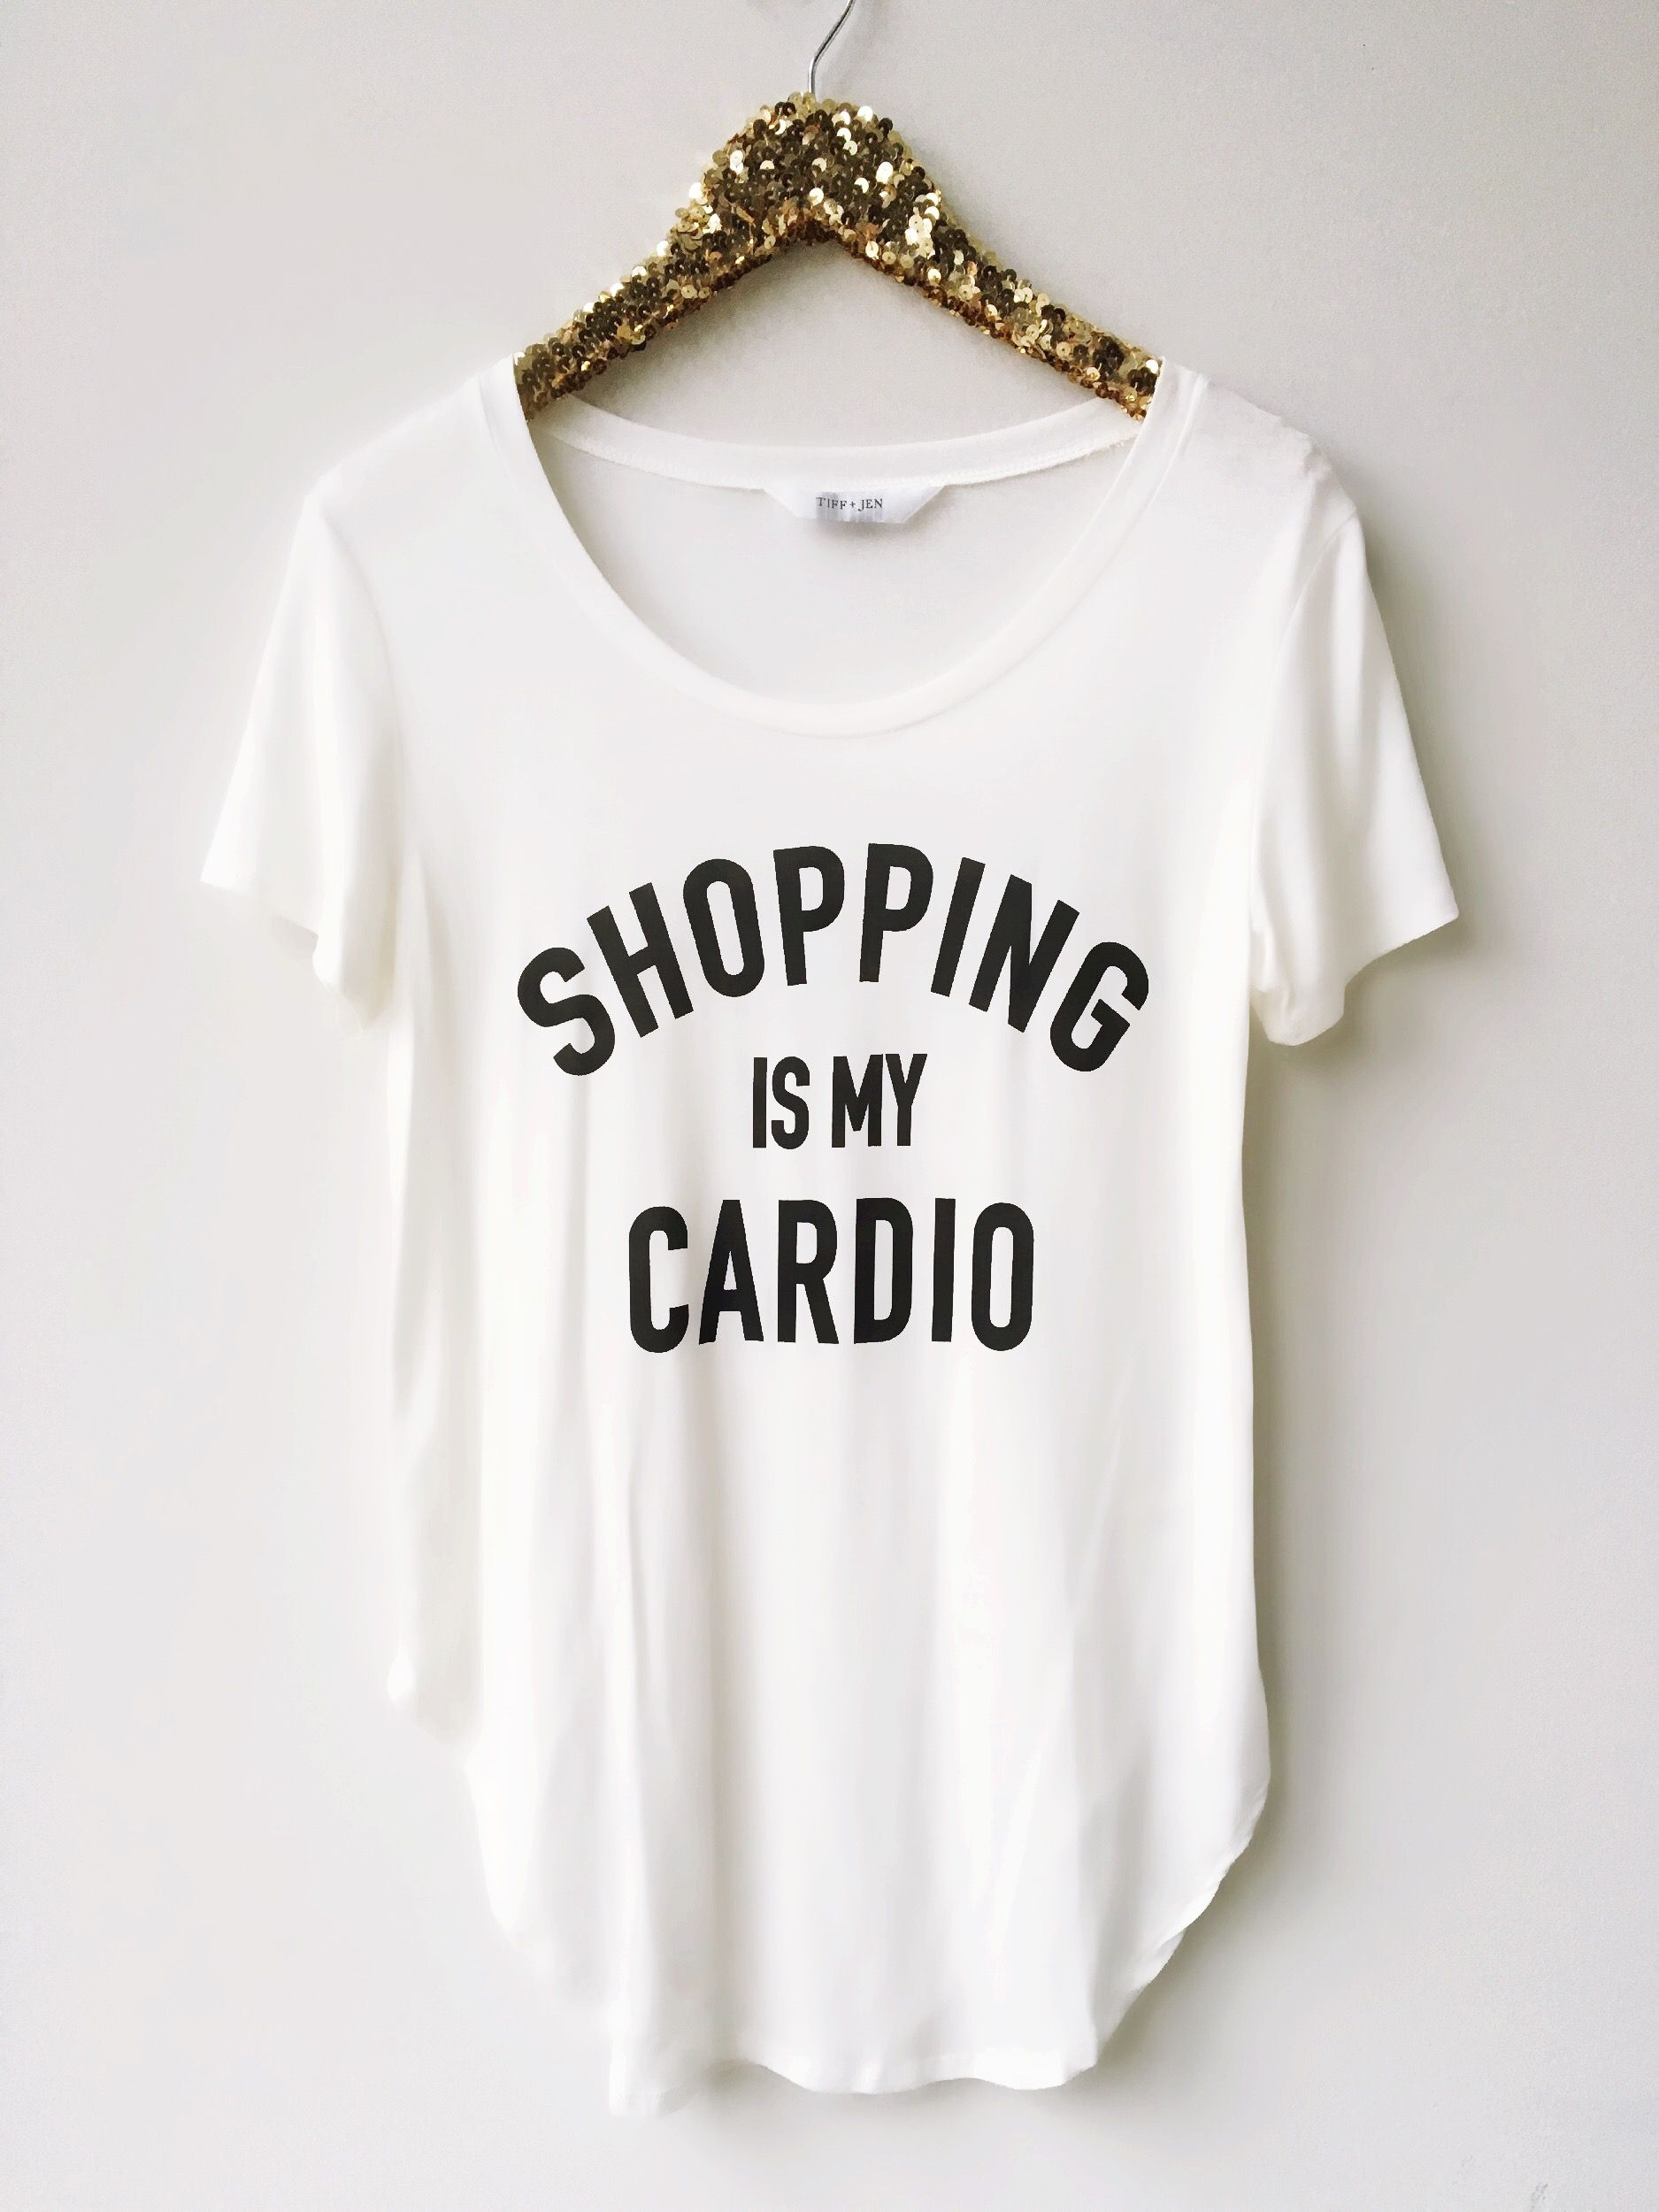 Graphic Tees, Shopping, cardio, funny shirts, shirts with